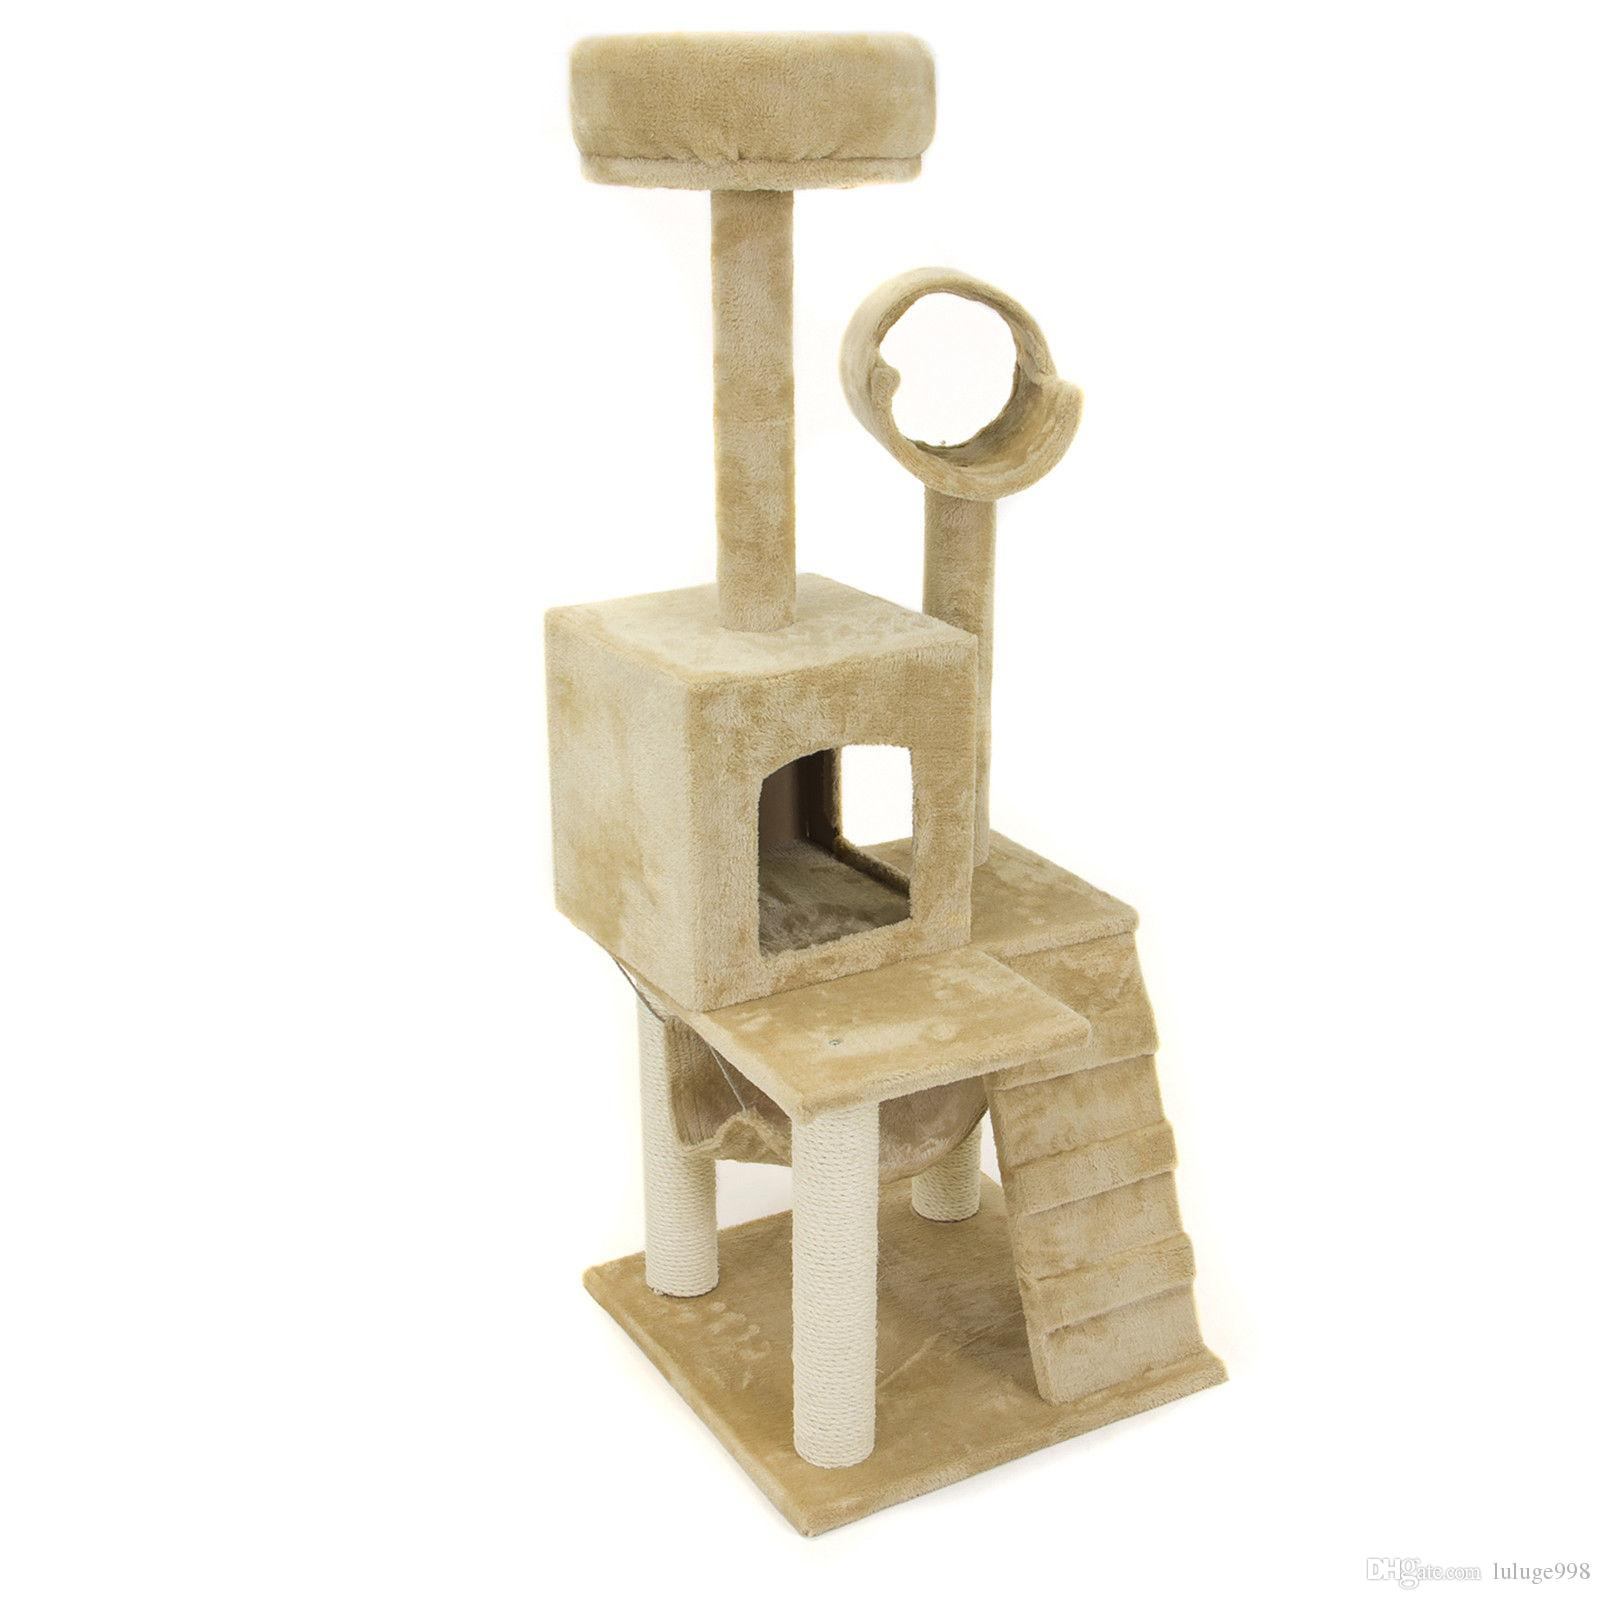 2018 deluxe 52 cat tree tower condo scratcher furniture kitten house hammock from luluge998  37 19   dhgate   2018 deluxe 52 cat tree tower condo scratcher furniture kitten      rh   dhgate